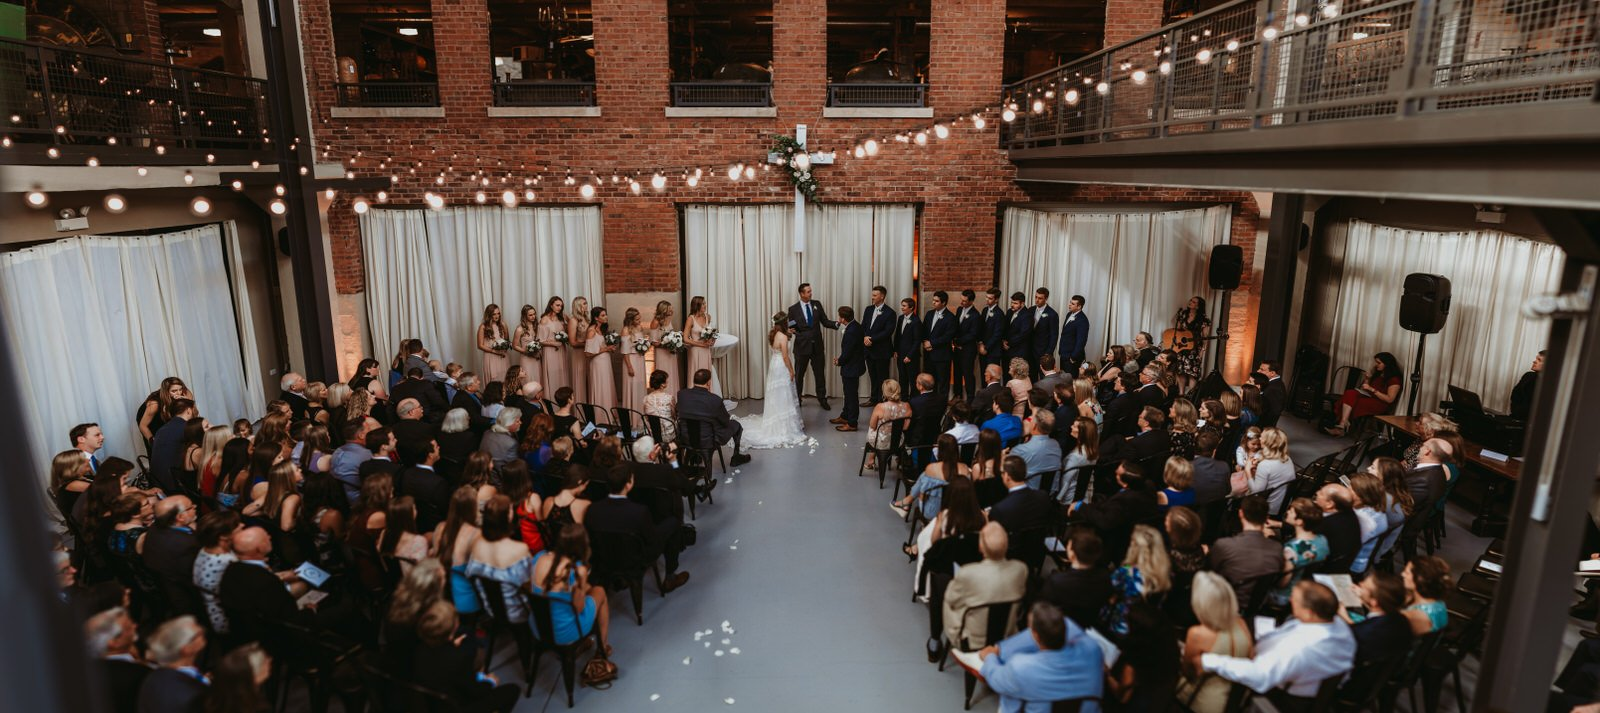 Architectural artifacts wedding photography, panorama